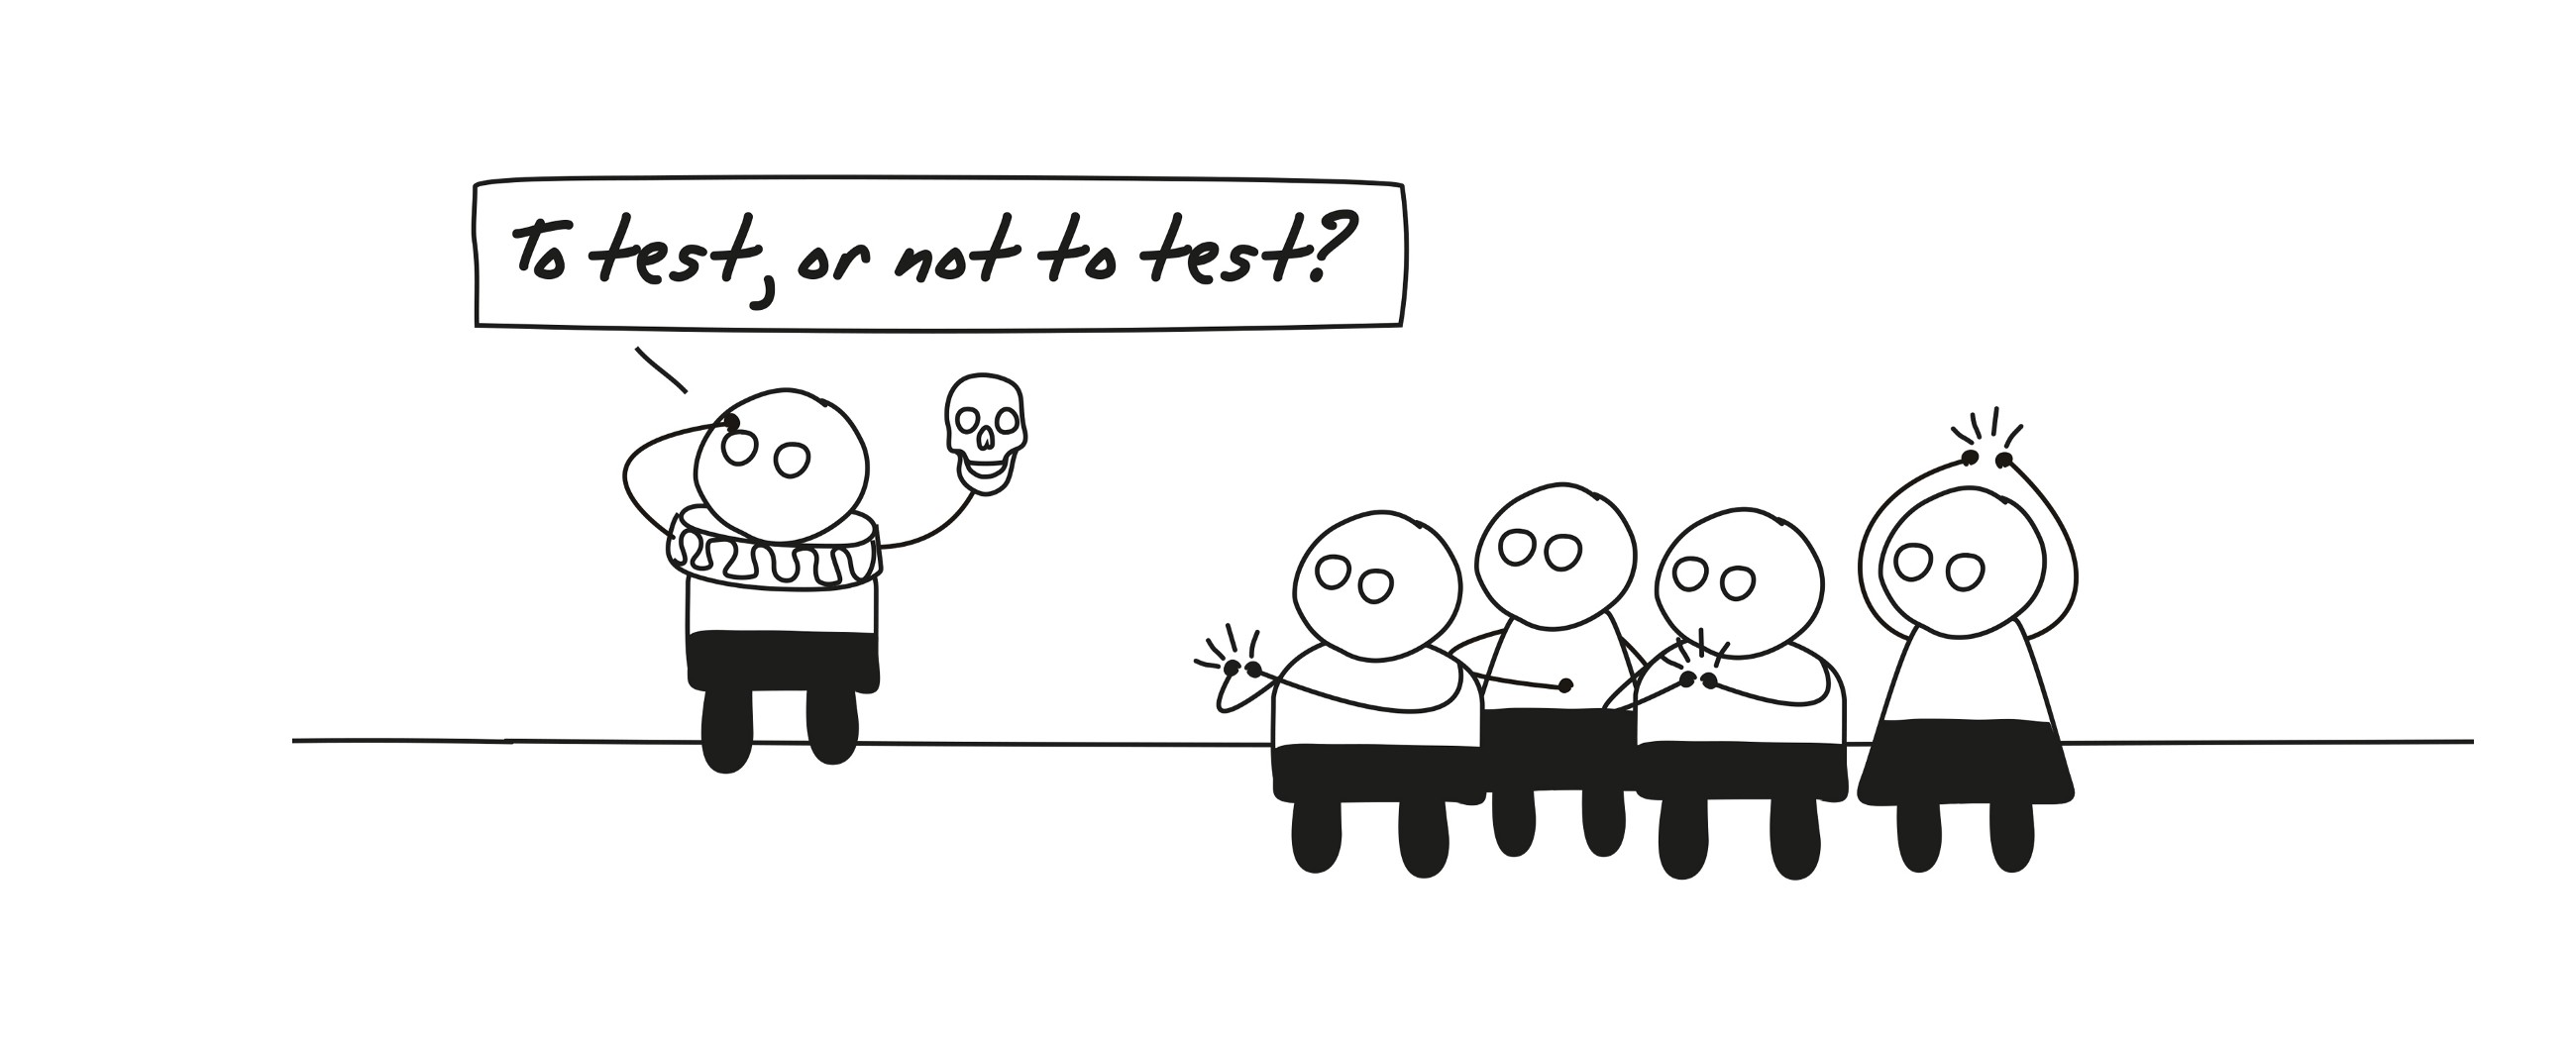 To user-test, or not to user-test? That is the question.